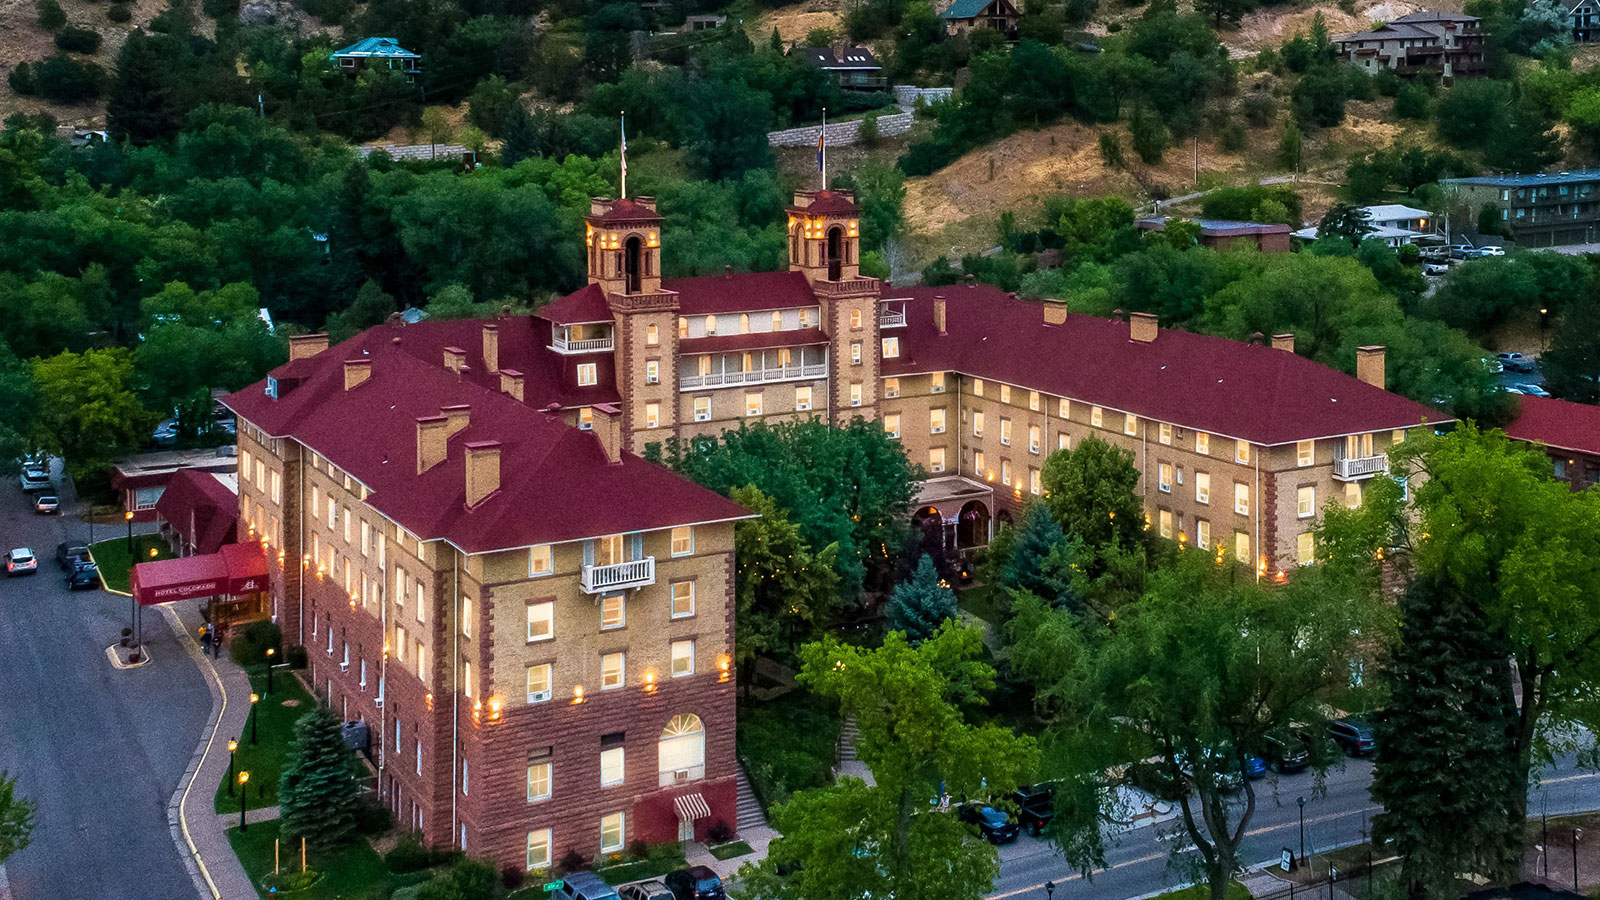 Image of hotel exterior at the Hotel Colorado, 1893, Member of Historic Hotels of America, Glenwood Springs, Colorado, Overview